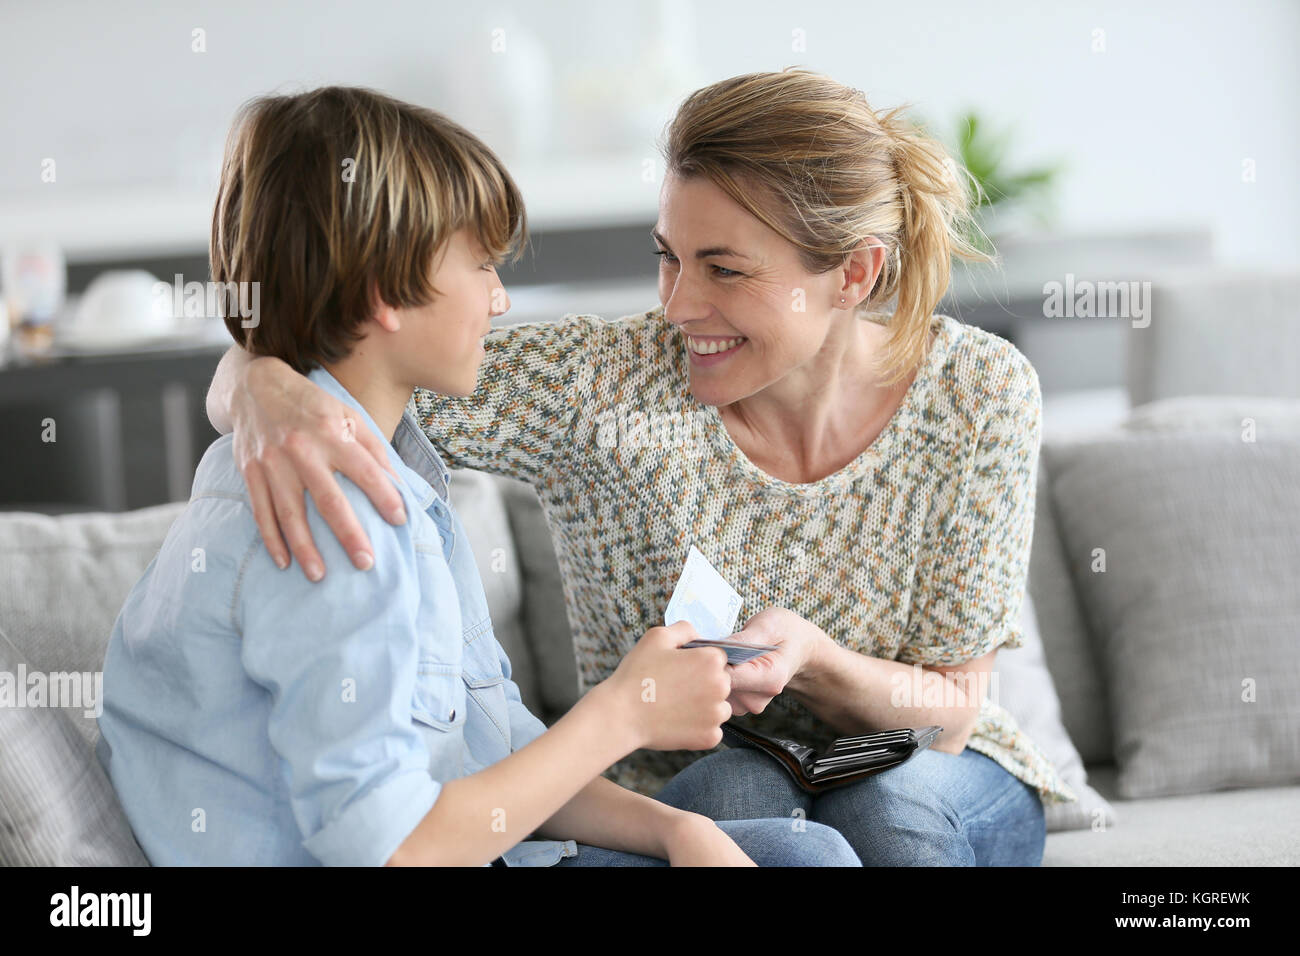 Mother giving money to adolescent for reward - Stock Image